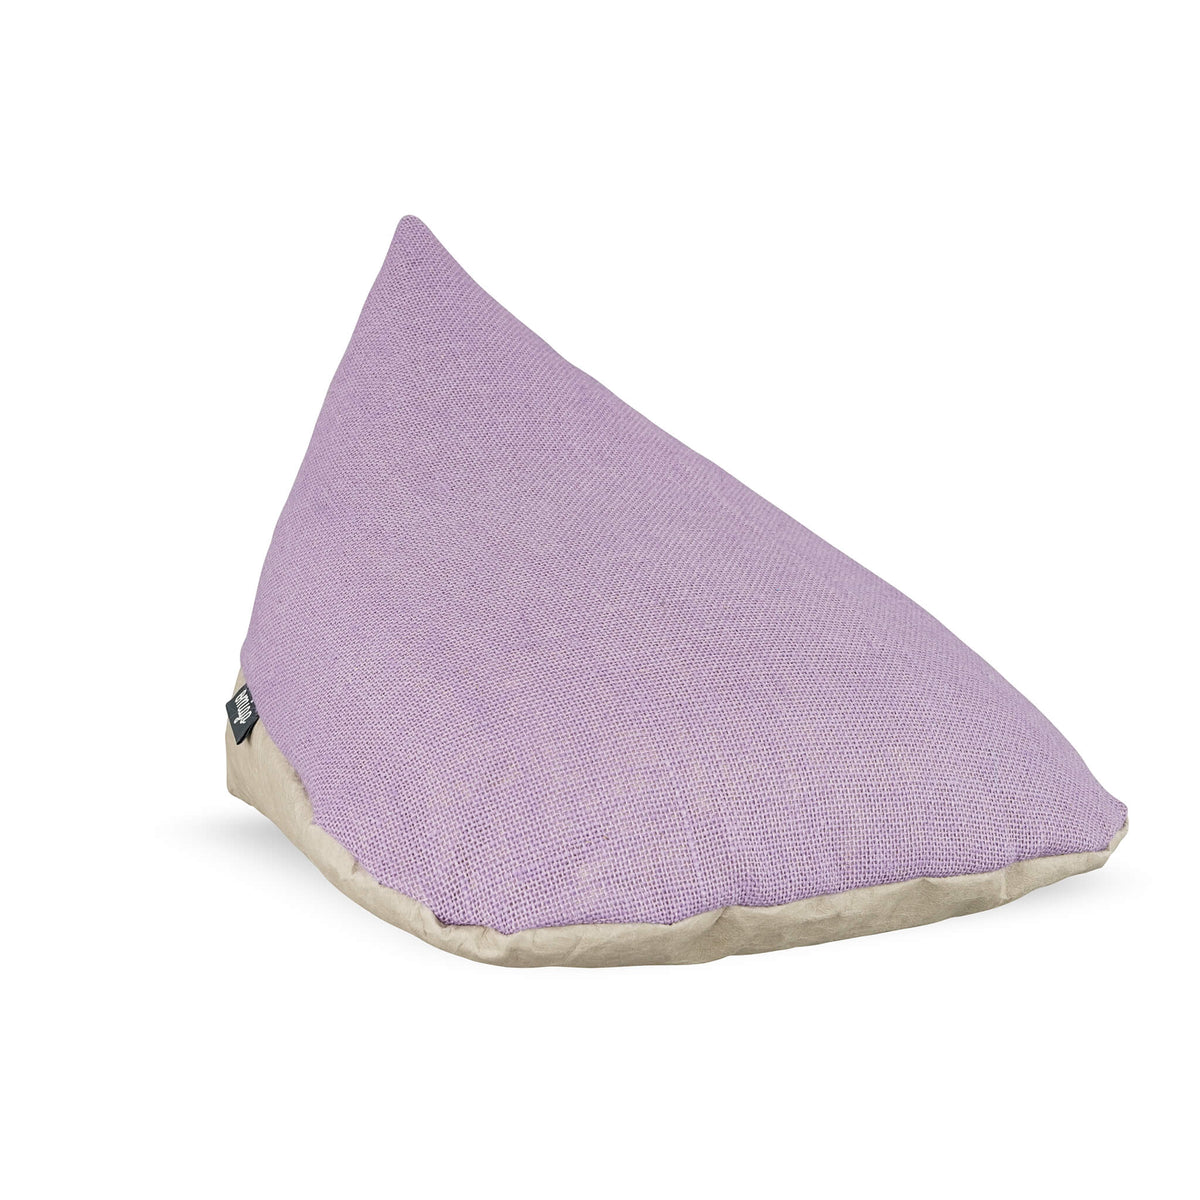 meditation pillow with grey vegan leather base and purple hemp top